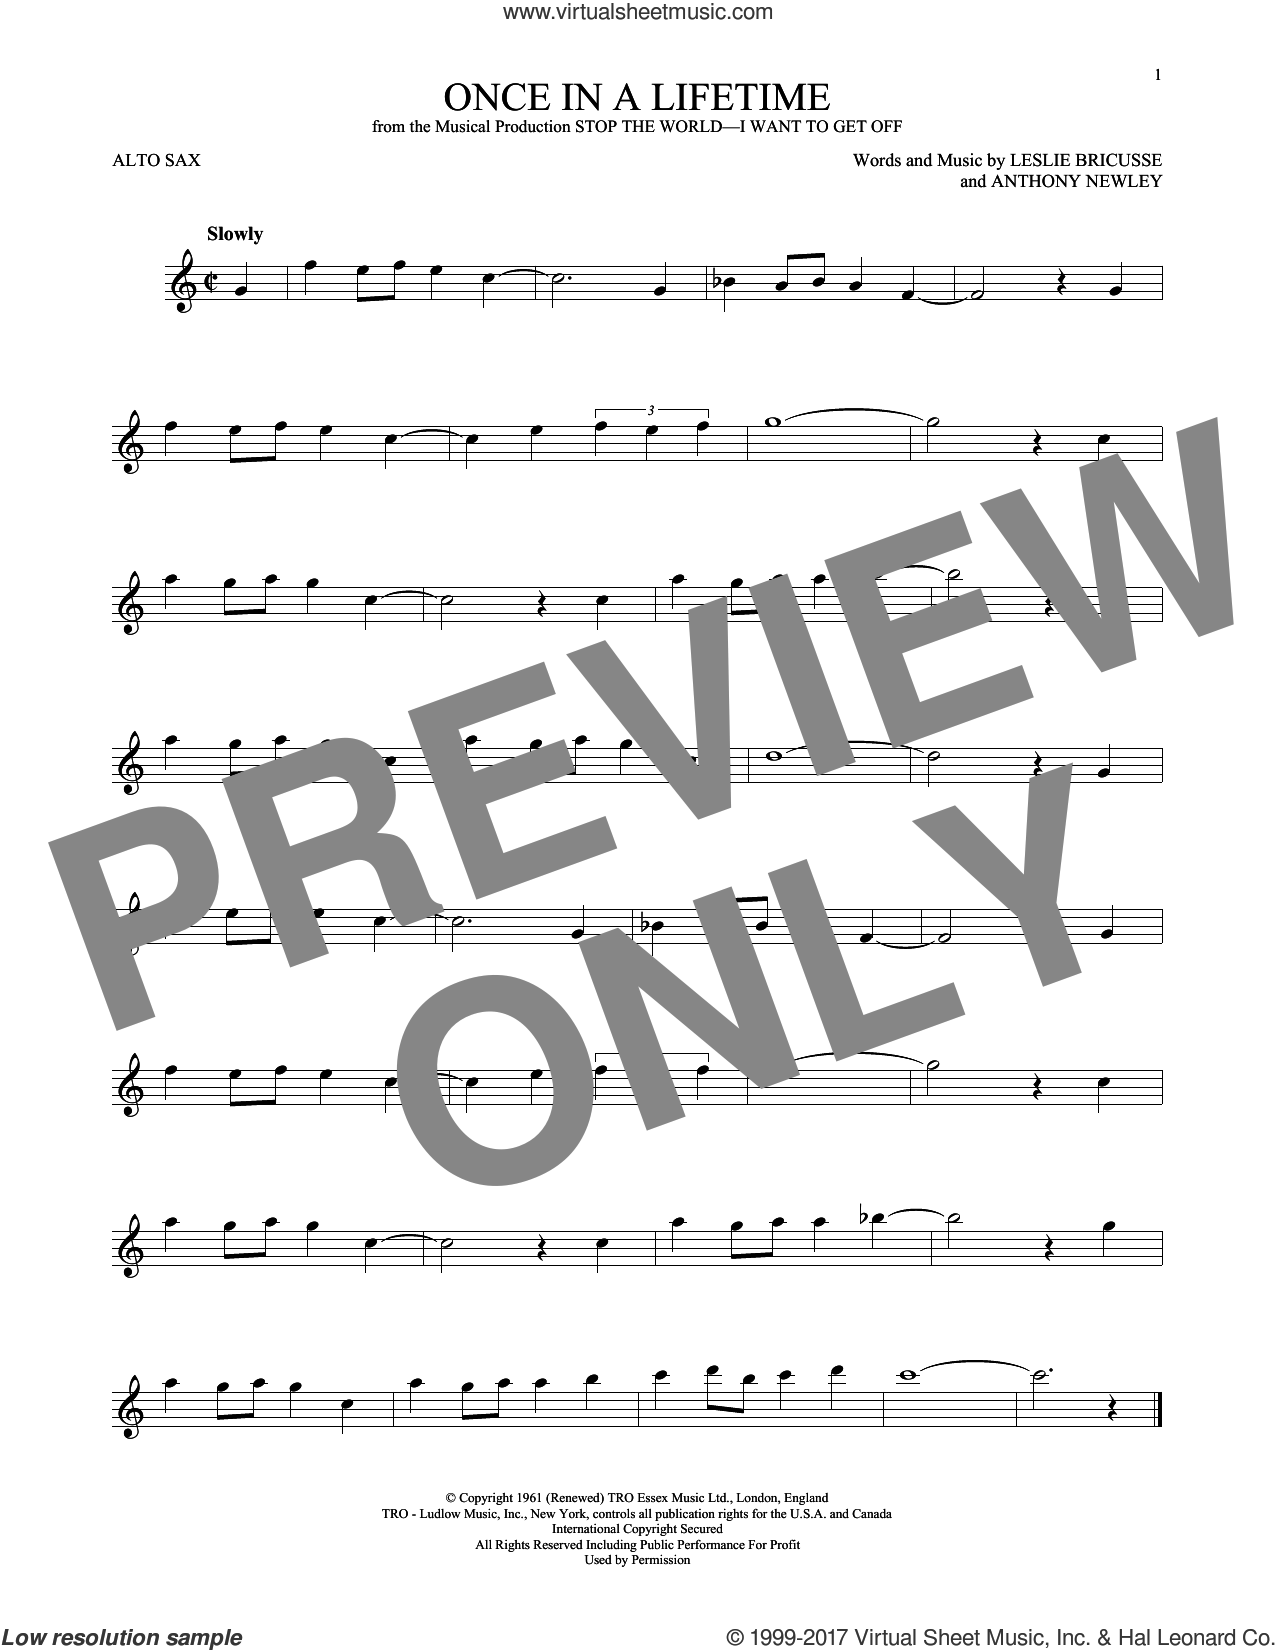 Once In A Lifetime sheet music for alto saxophone solo by Leslie Bricusse and Anthony Newley, intermediate skill level